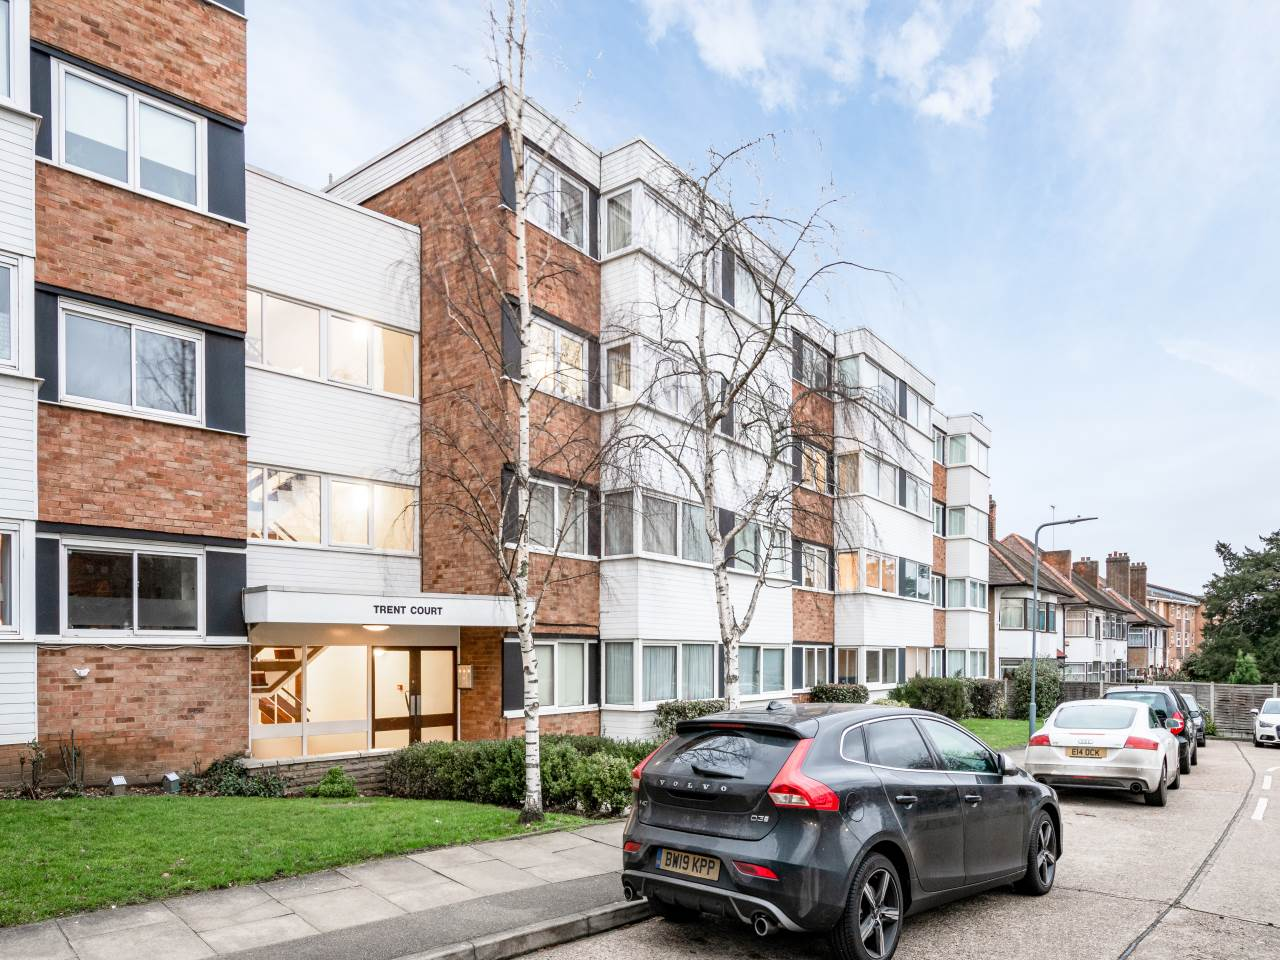 2 bed flat for sale in New Wanstead, E11